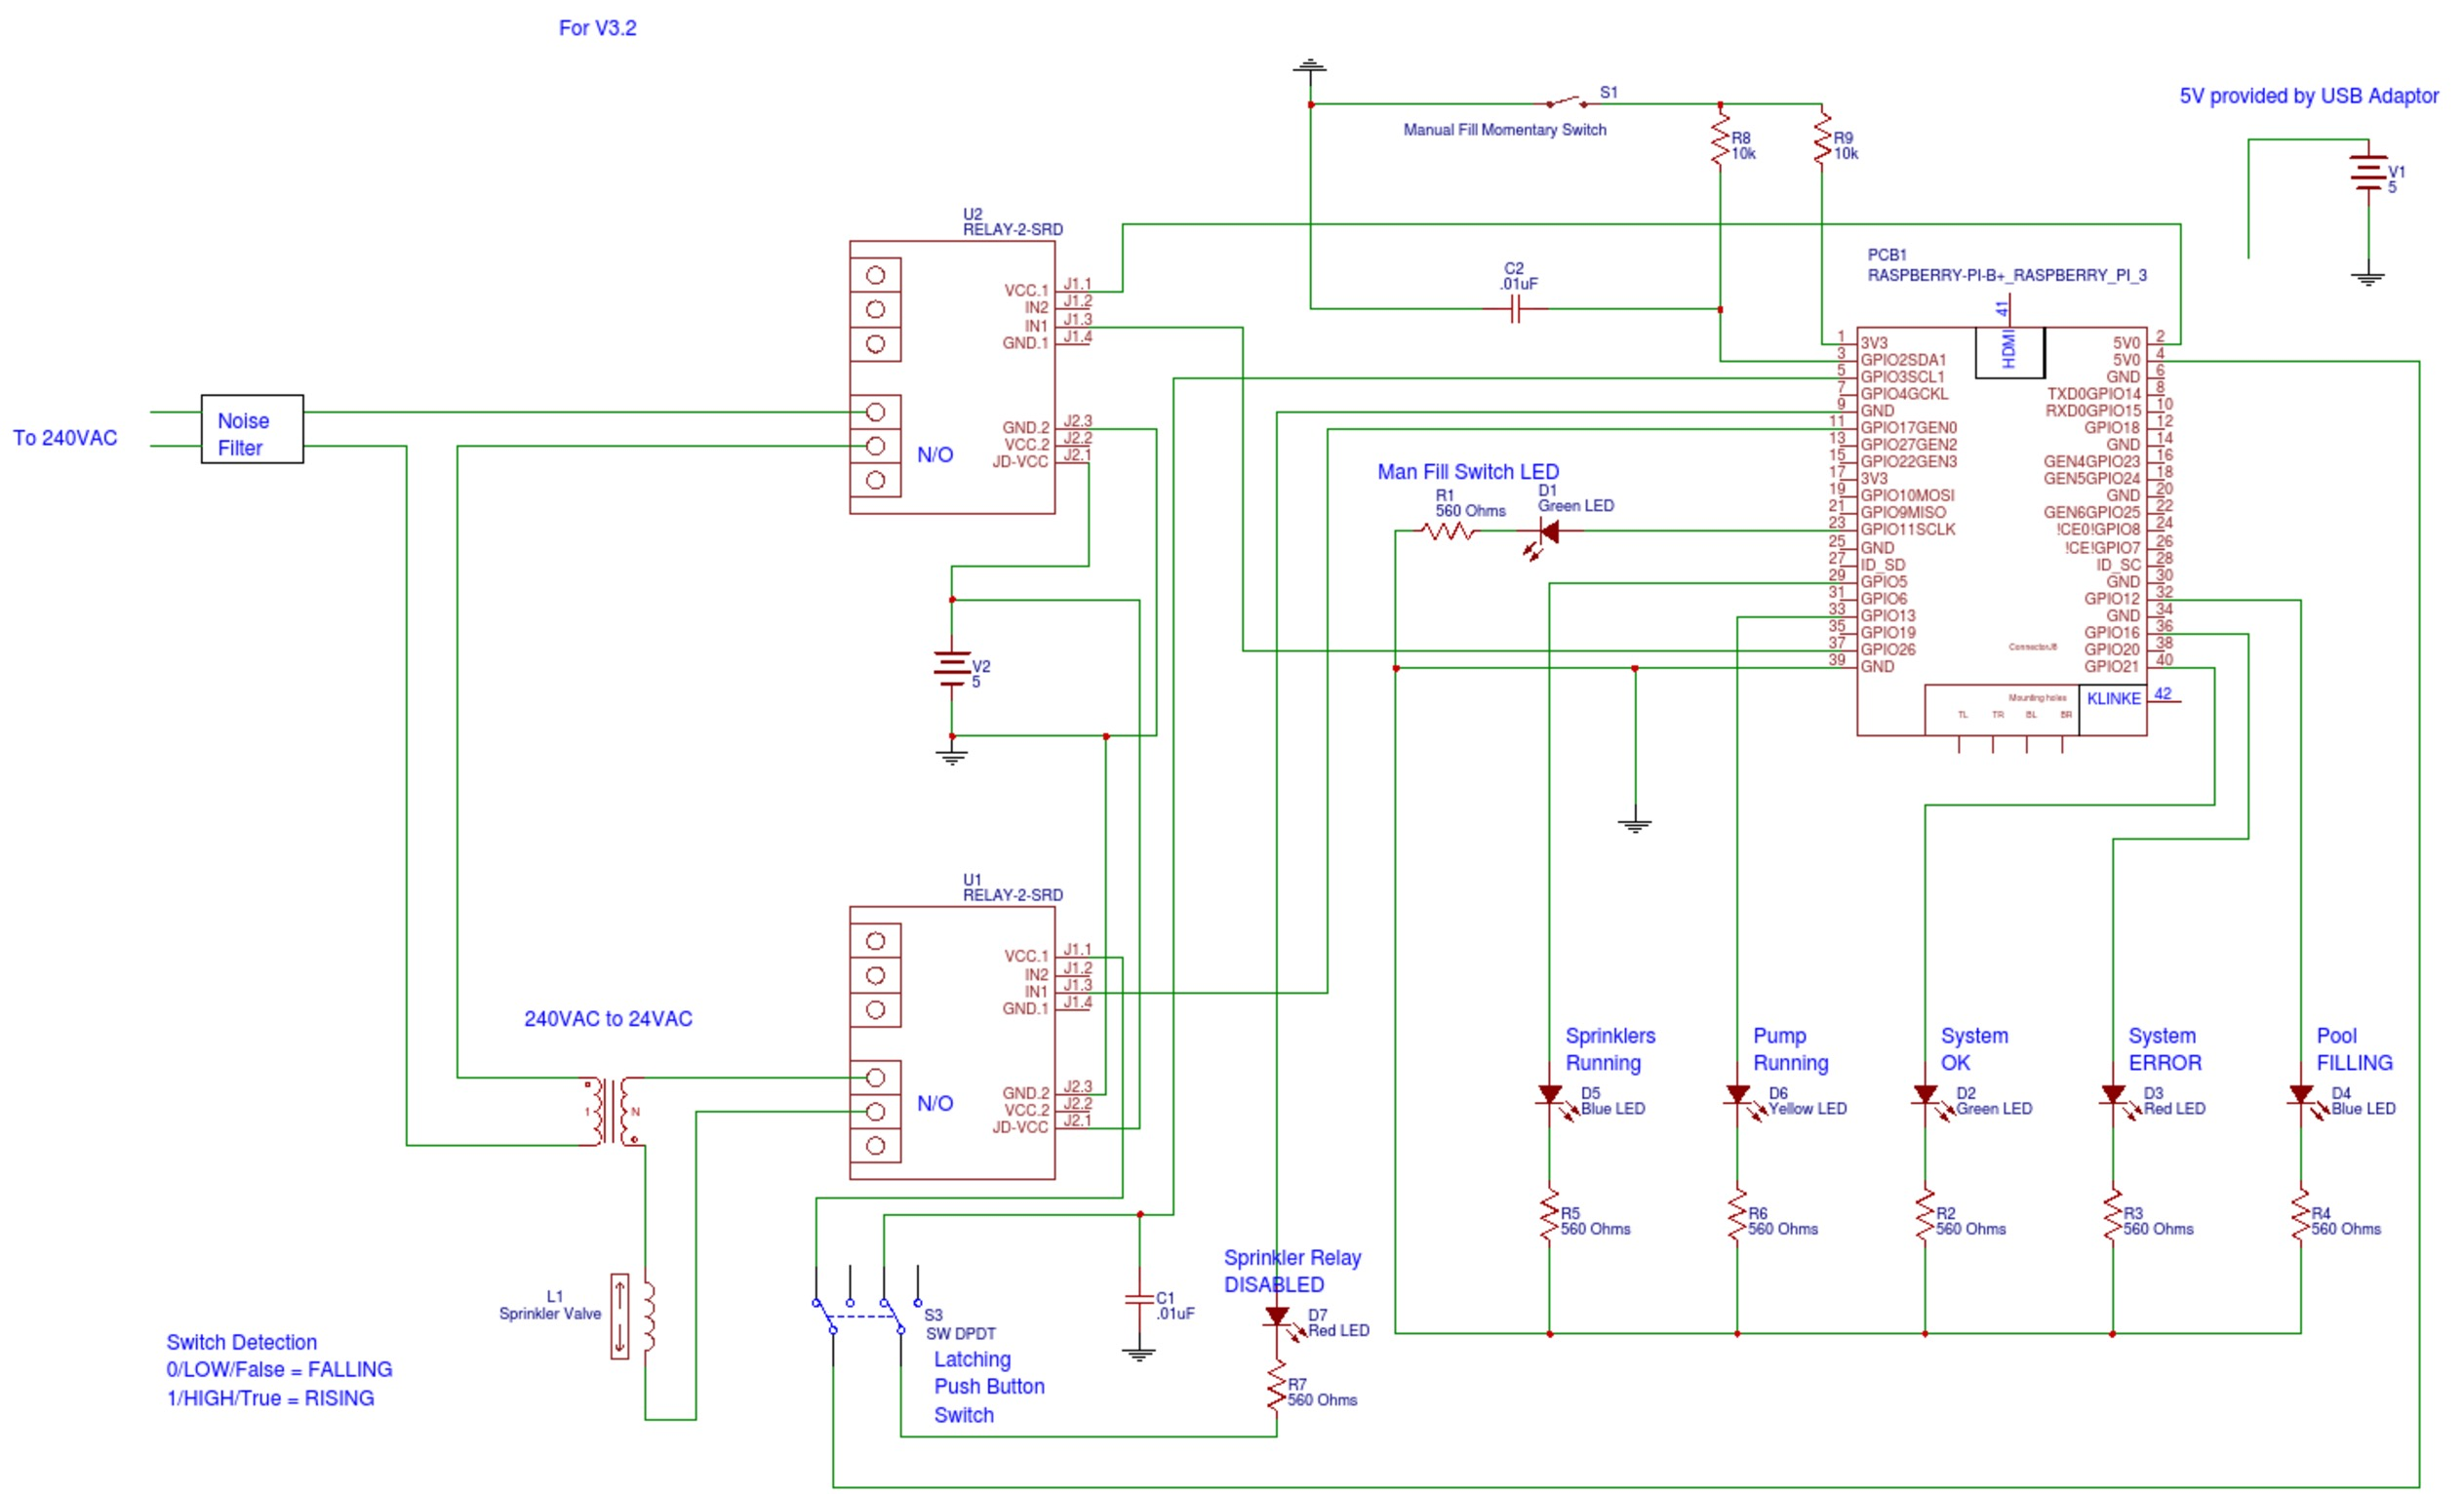 Pool Fill Control Simple Water Level Indicator Circuit Diagram V3 2 Pi3 Pfc Mhlfwf7bip